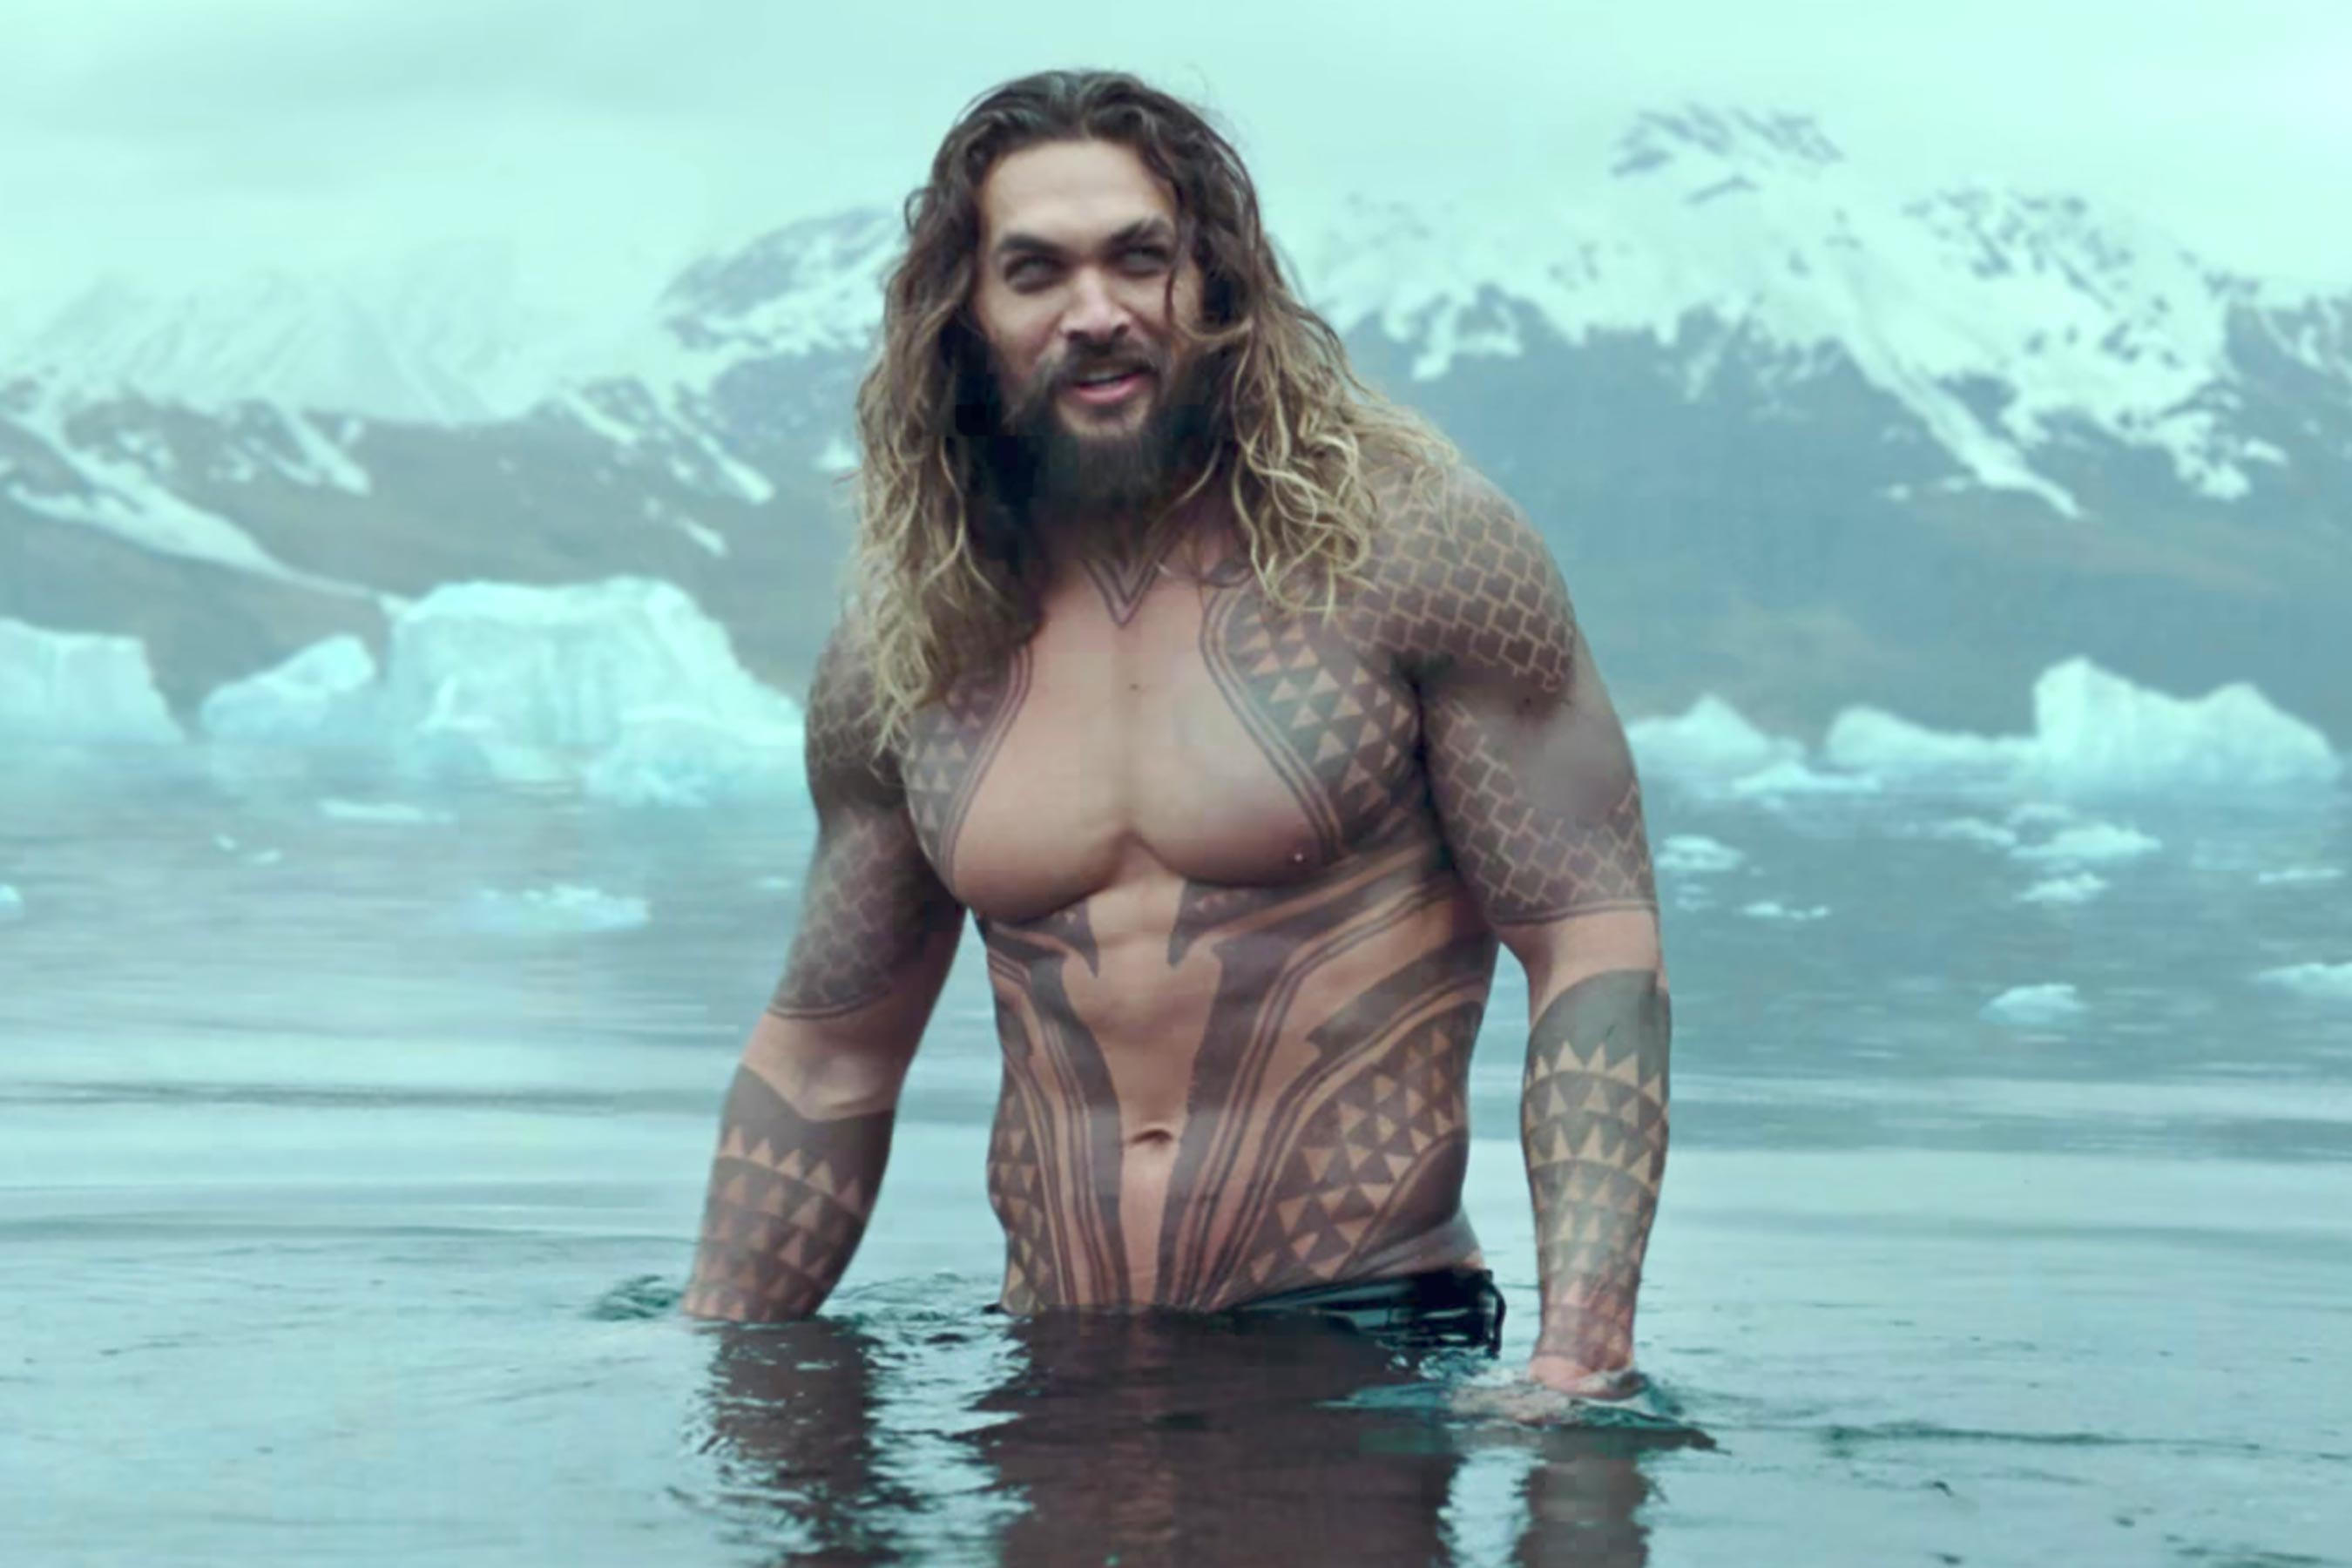 James Wan's Aquaman looks a lot better than the Entourage version